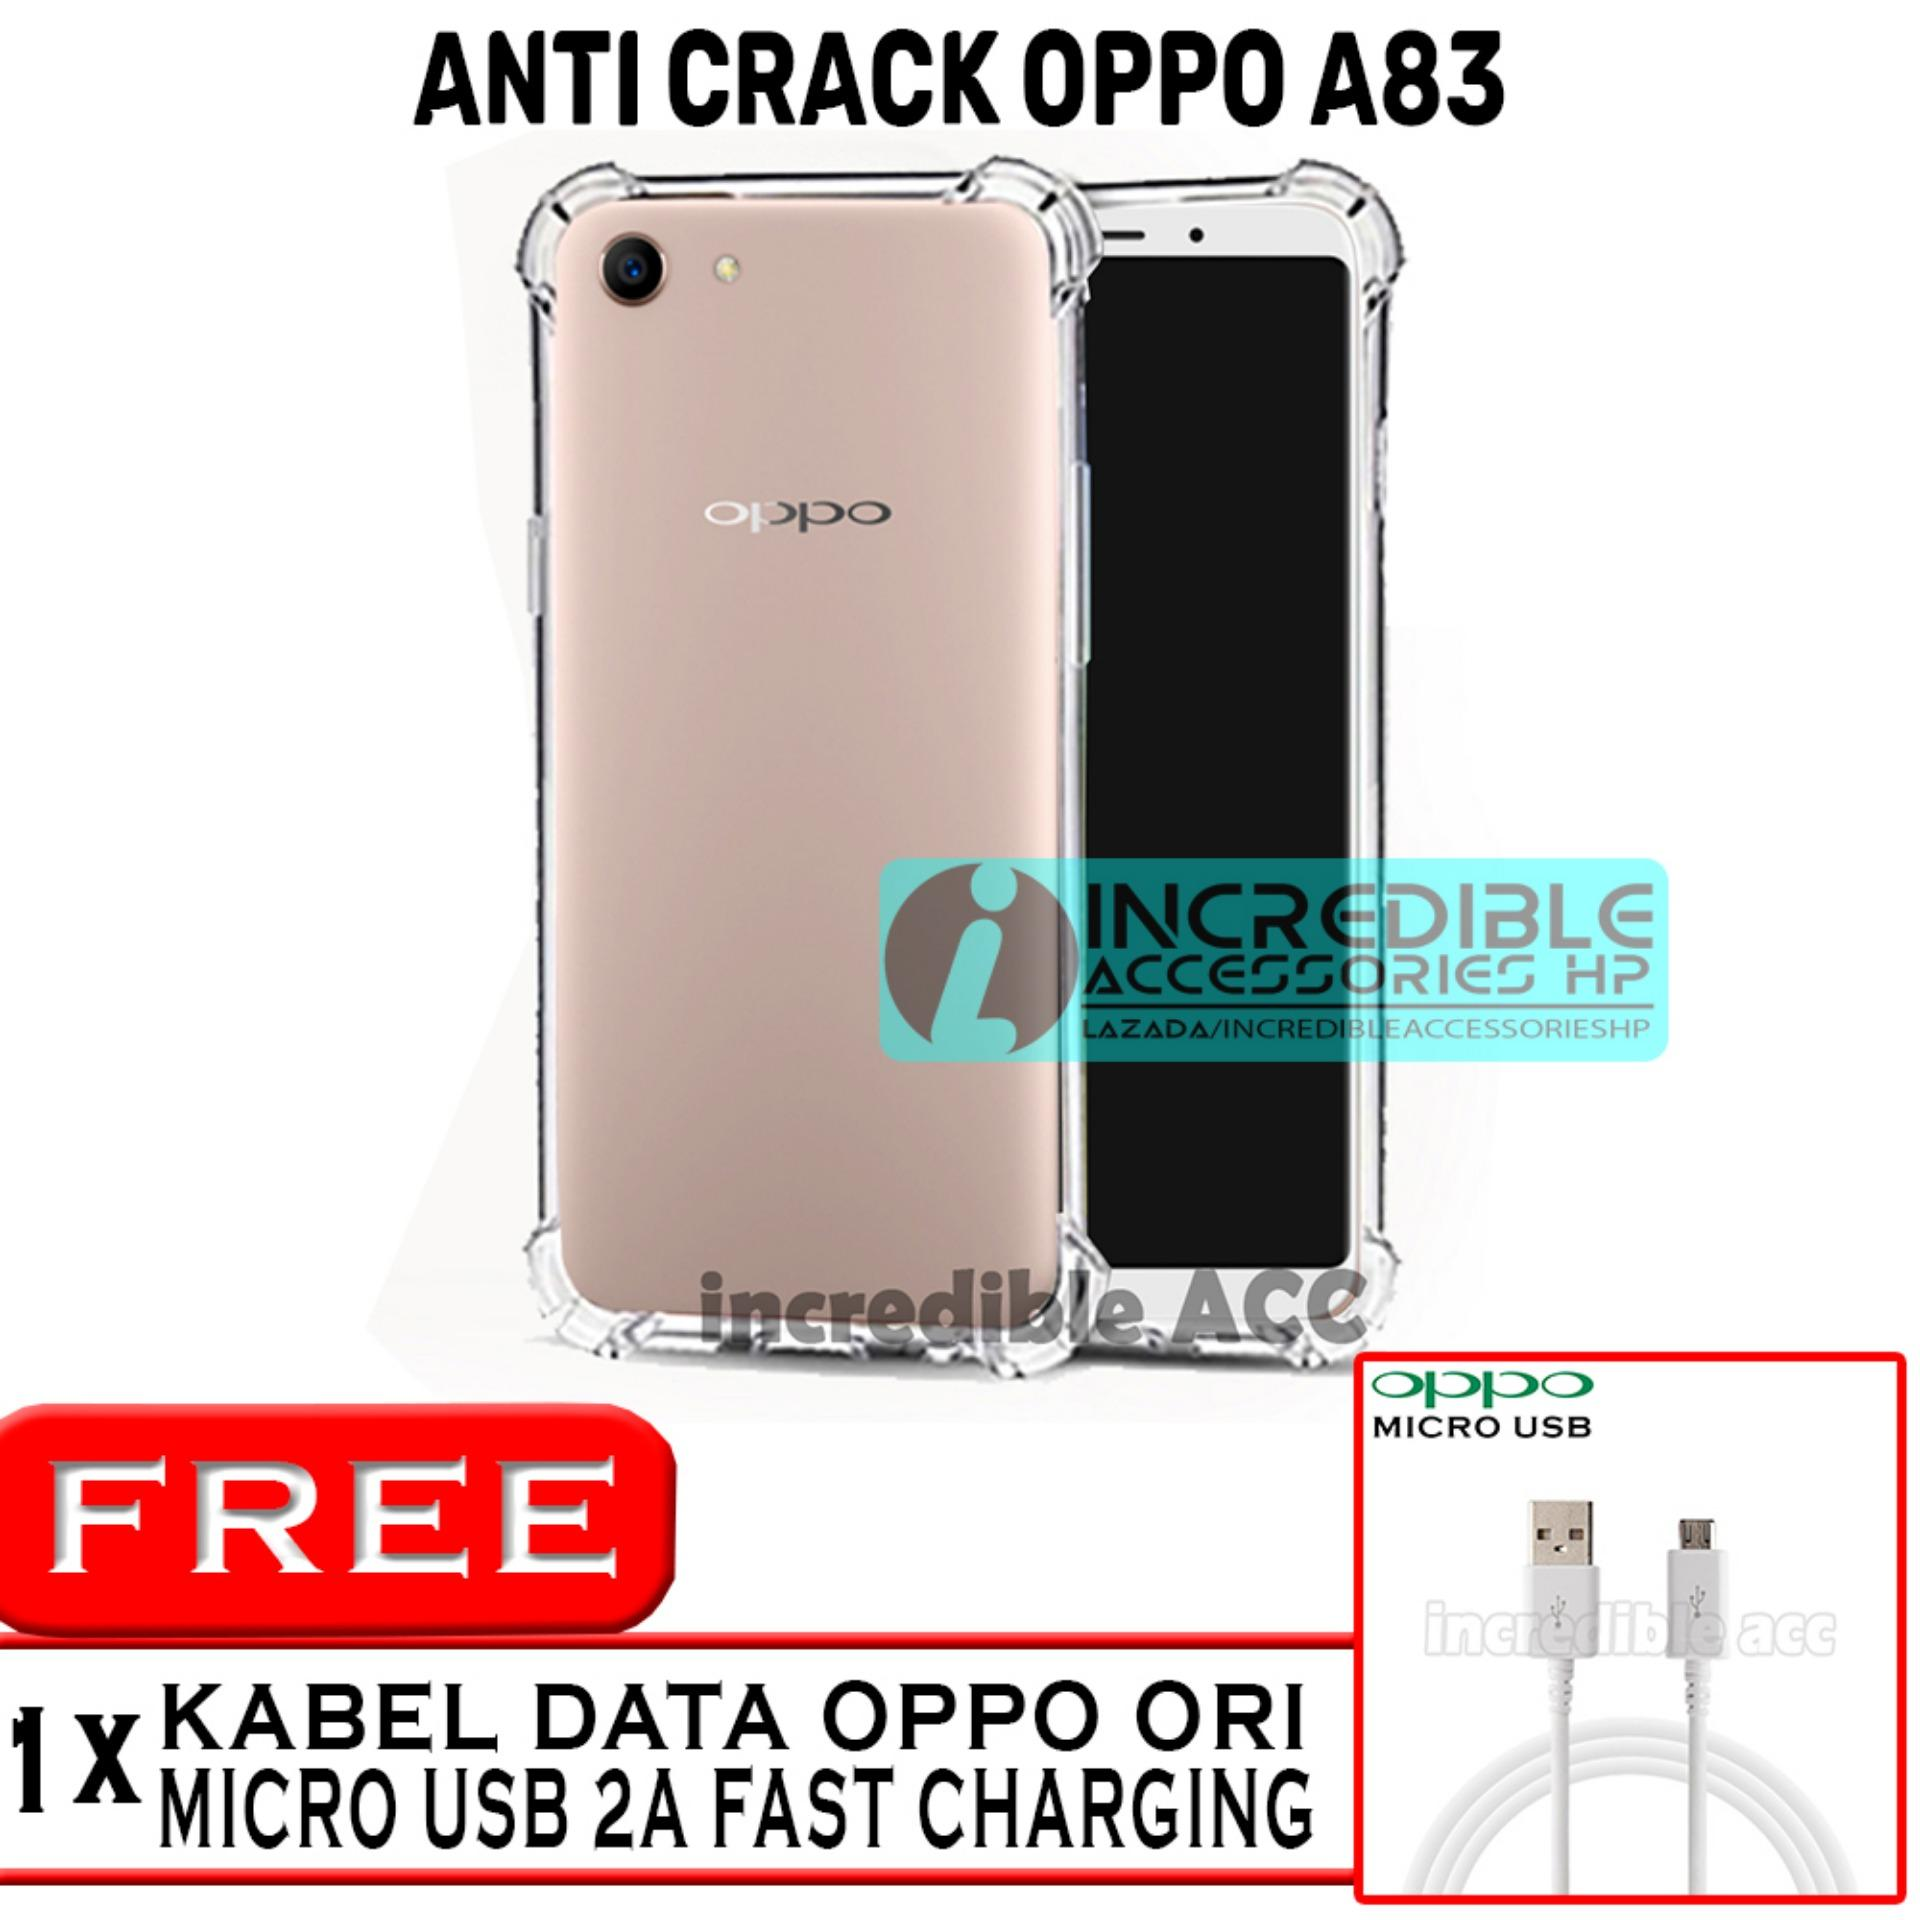 Oppo A83 Anti Crack Softcase Elegant Jelly Case - White Clear + Free Kabel data Oppo